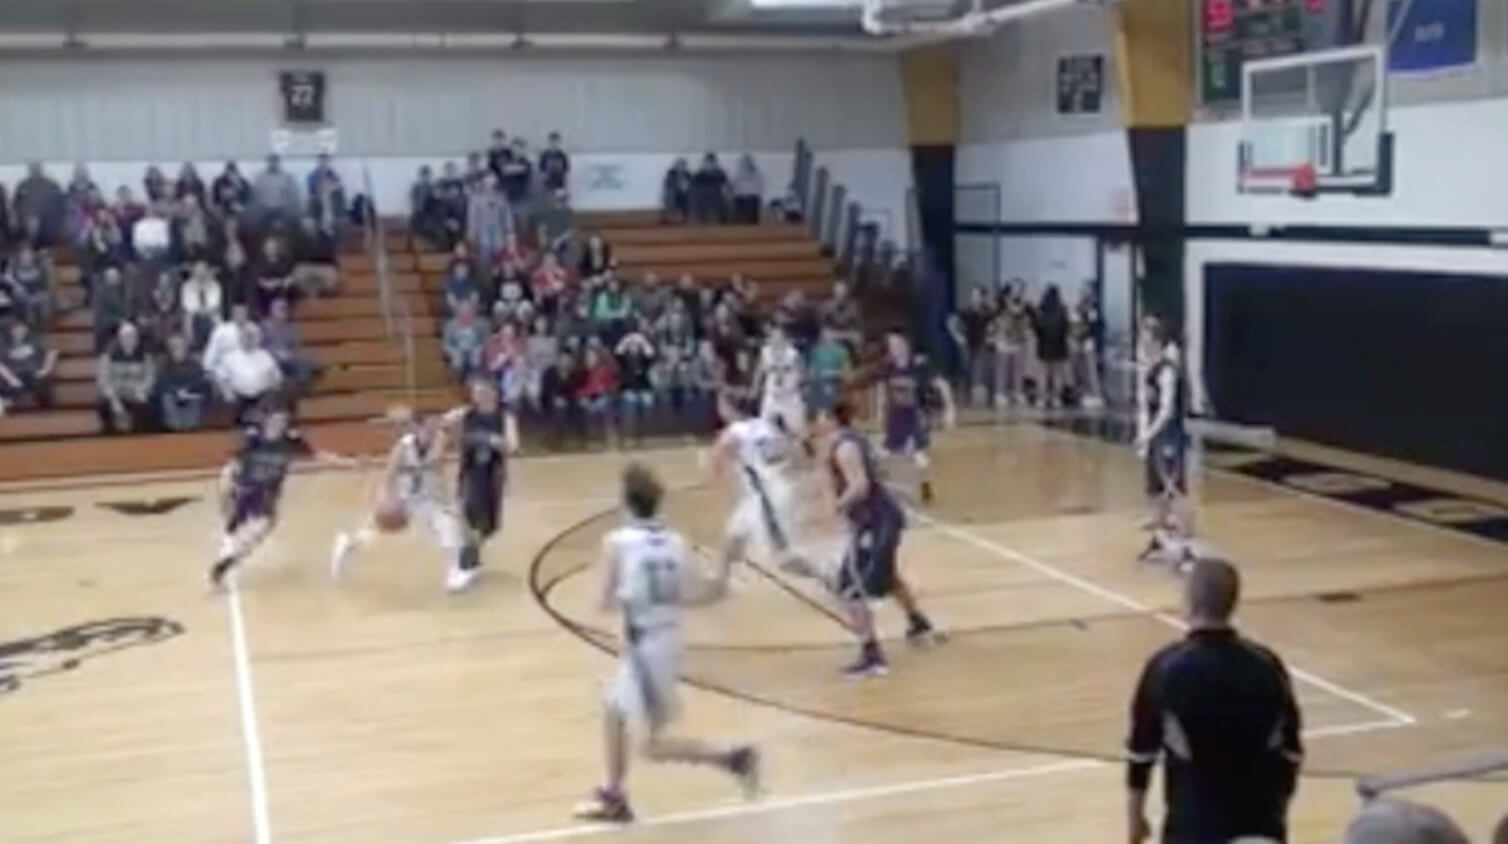 WATCH: Dansville's Josh Risner hits miracle 3-pointer to win game